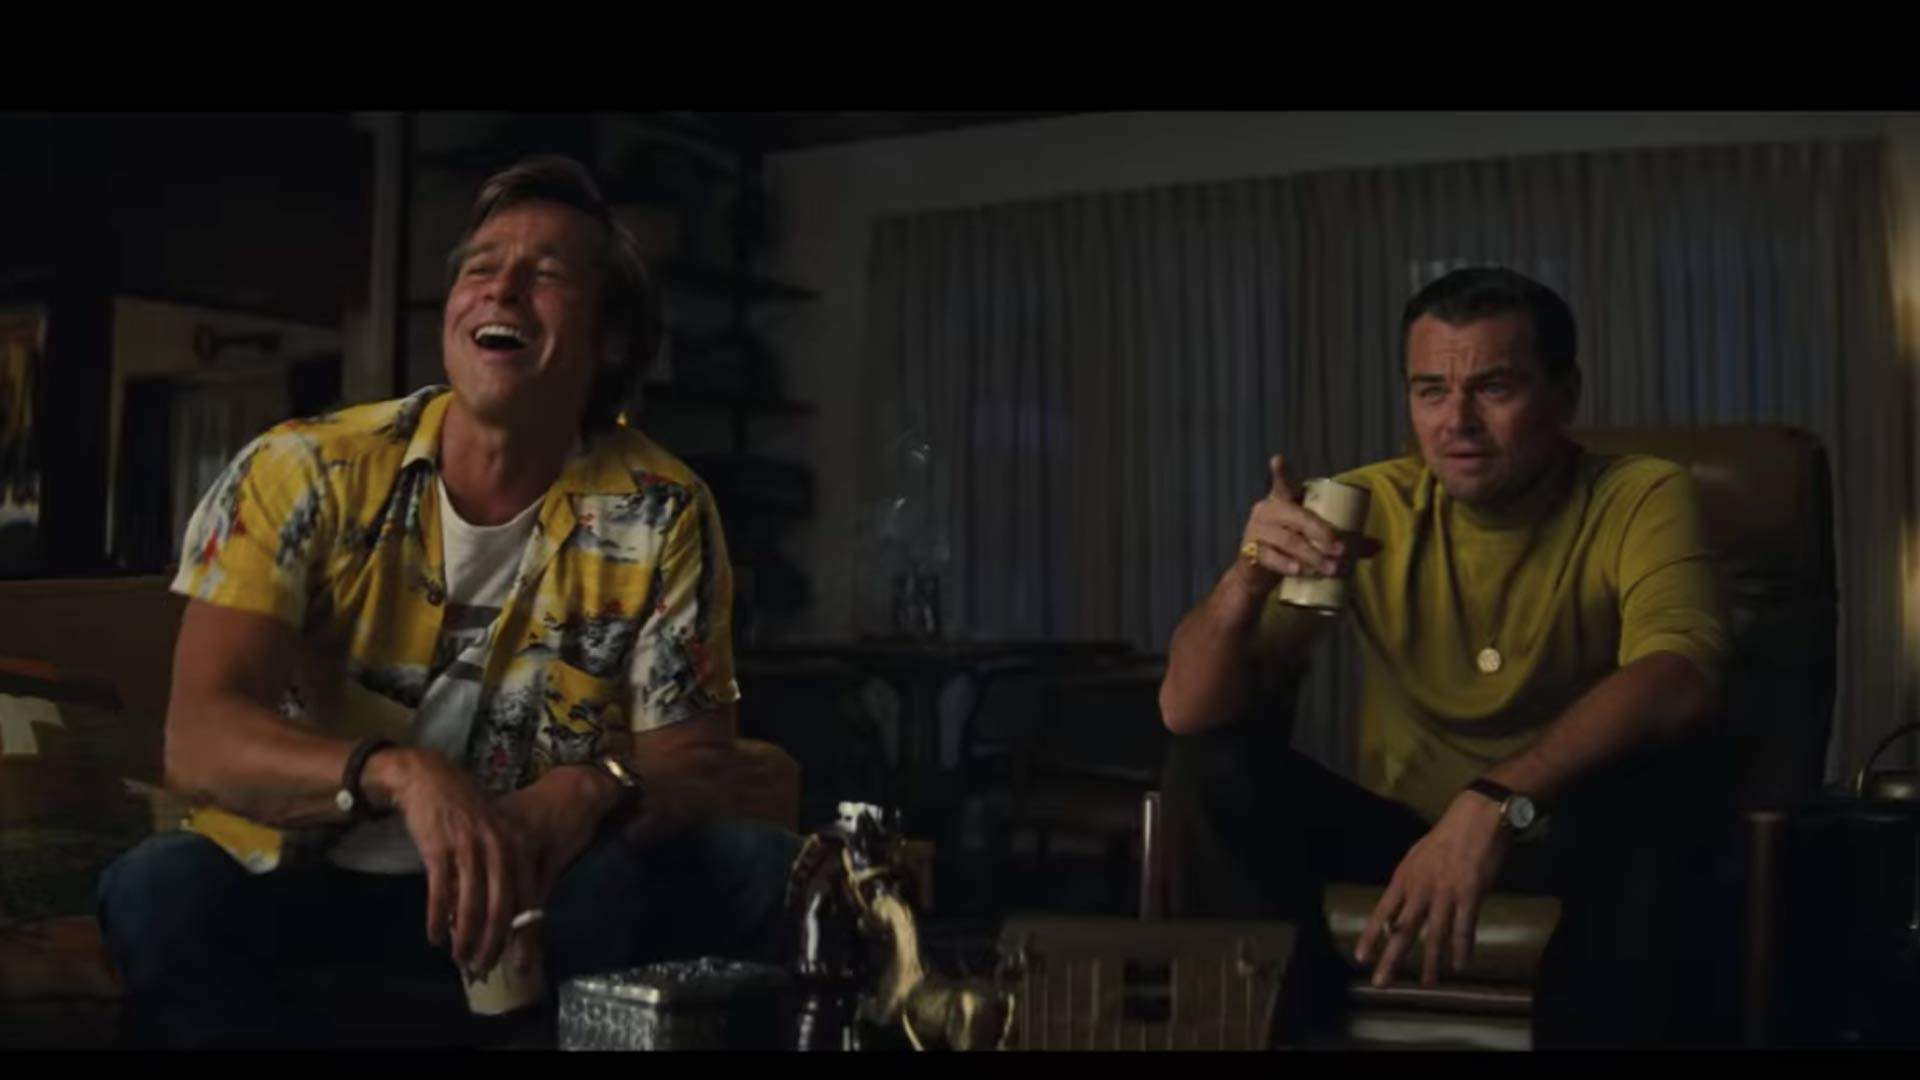 The Full Trailer Has Dropped for Quentin Tarantino's Star-Studded 'Once Upon a Time in Hollywood'